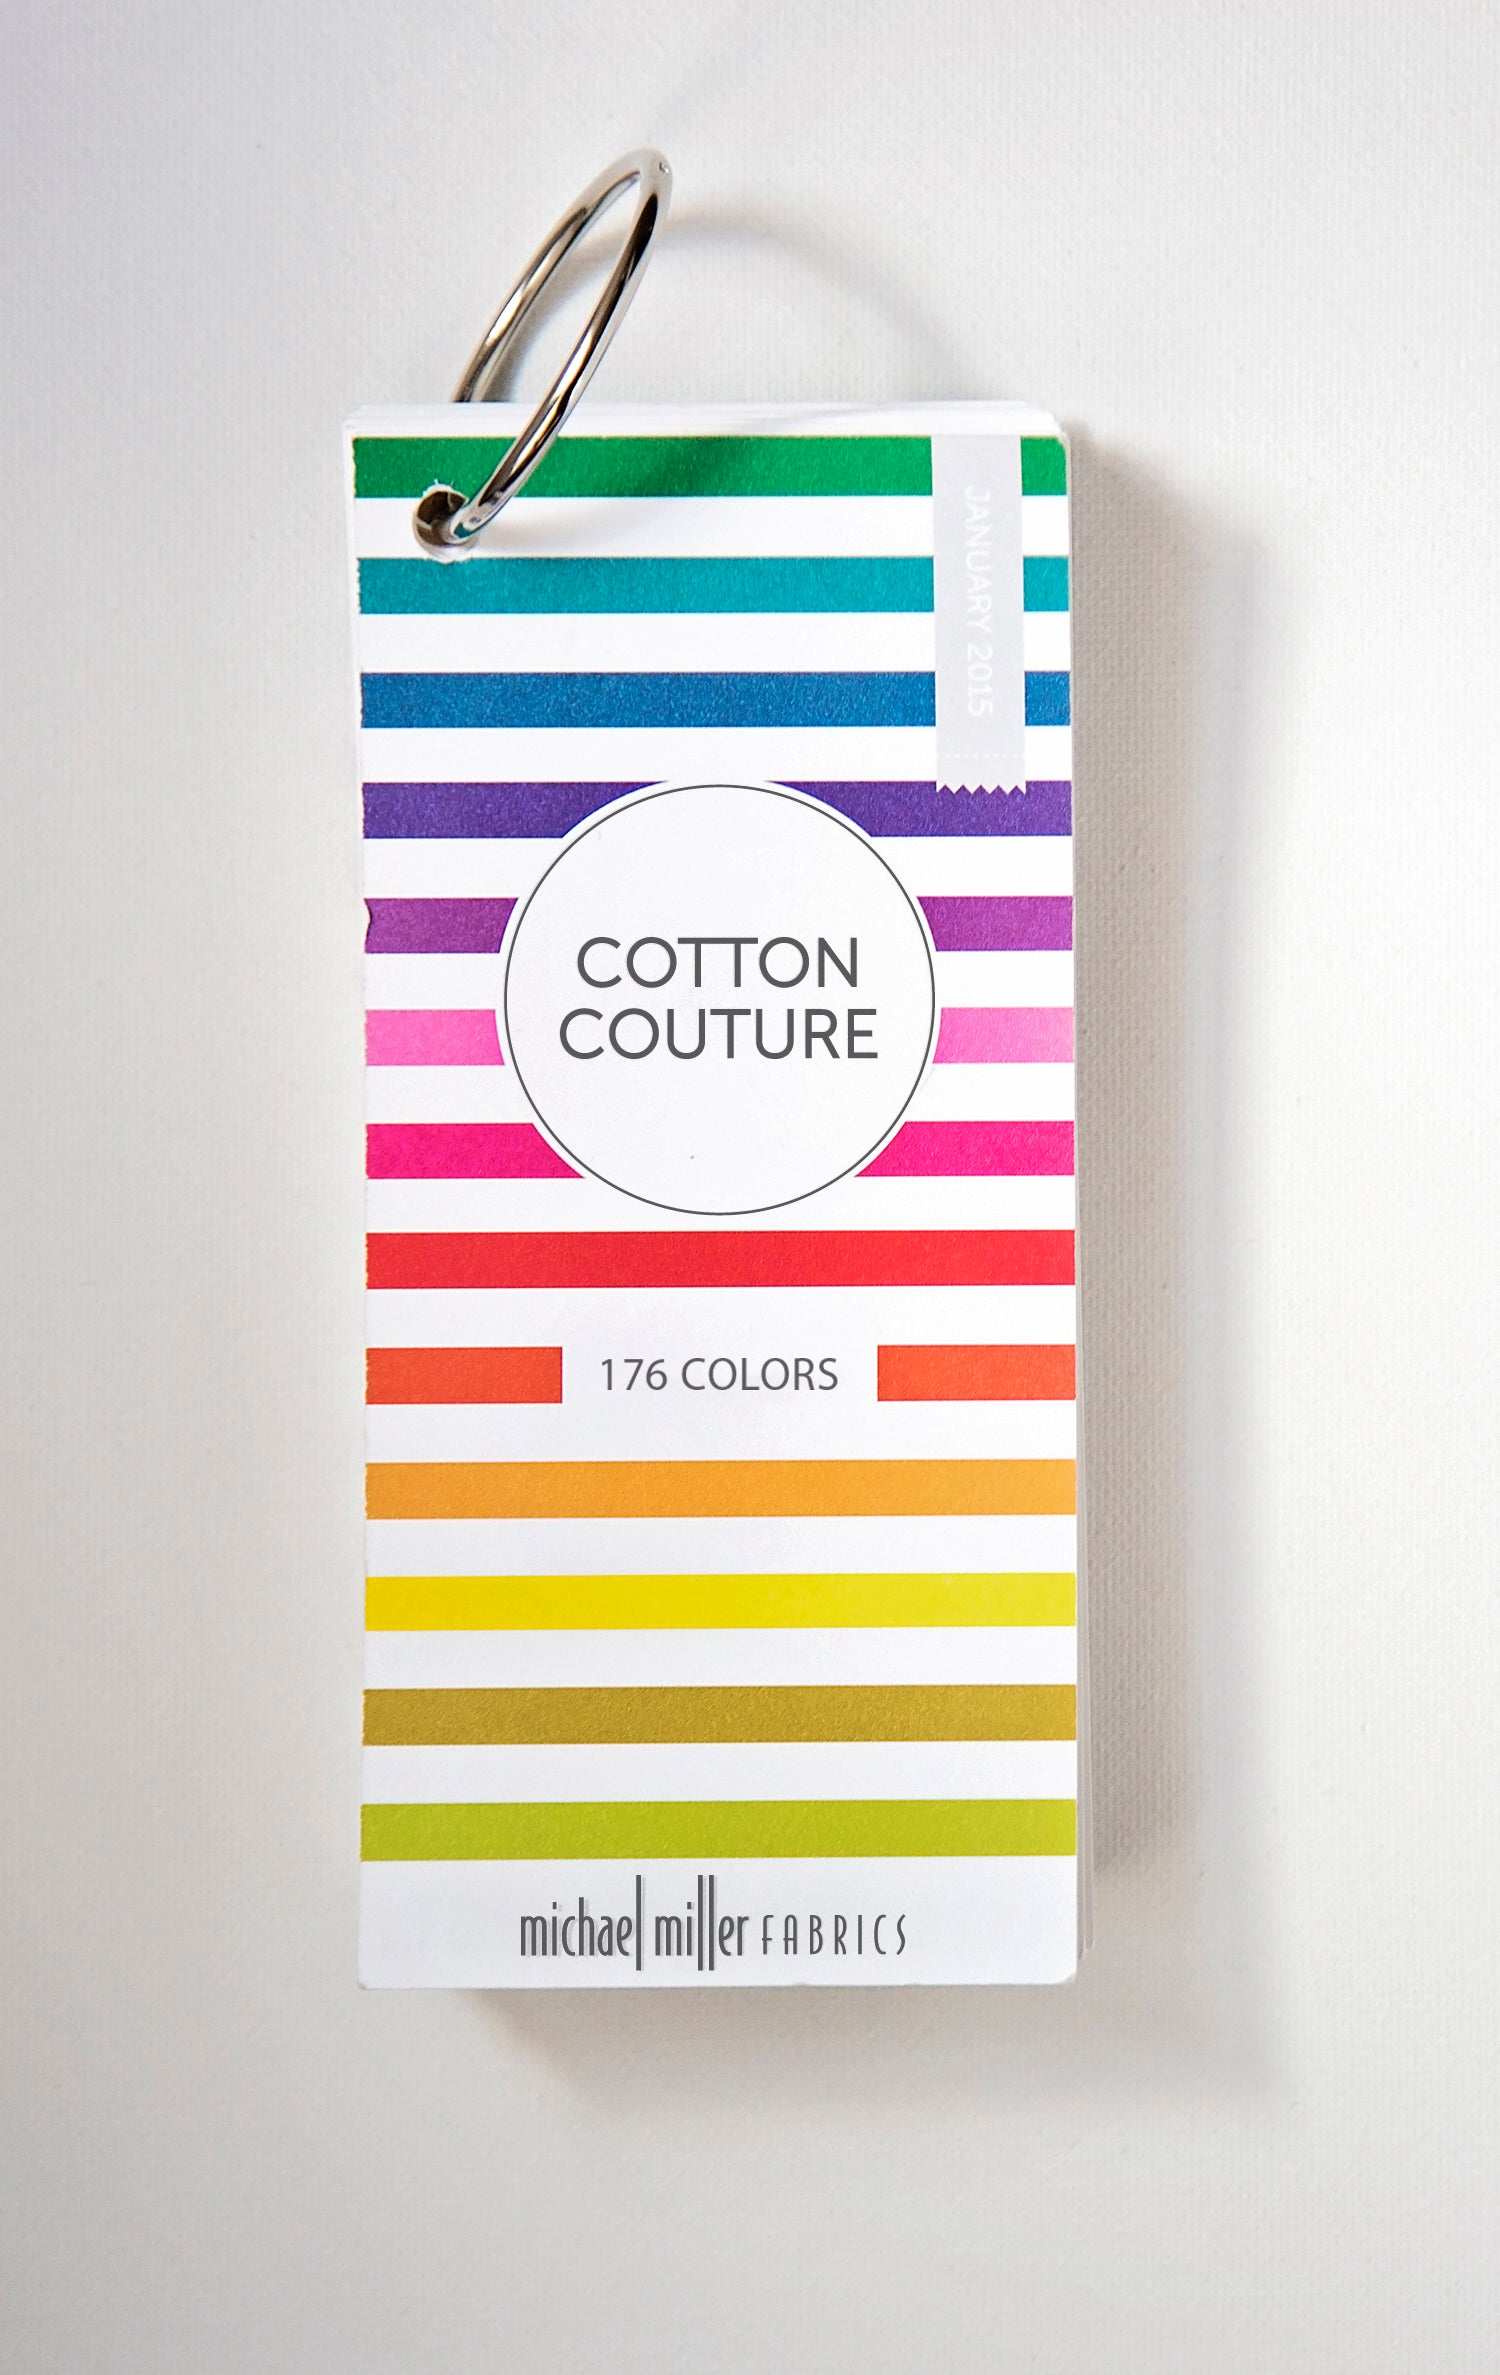 Cotton Couture Color Card